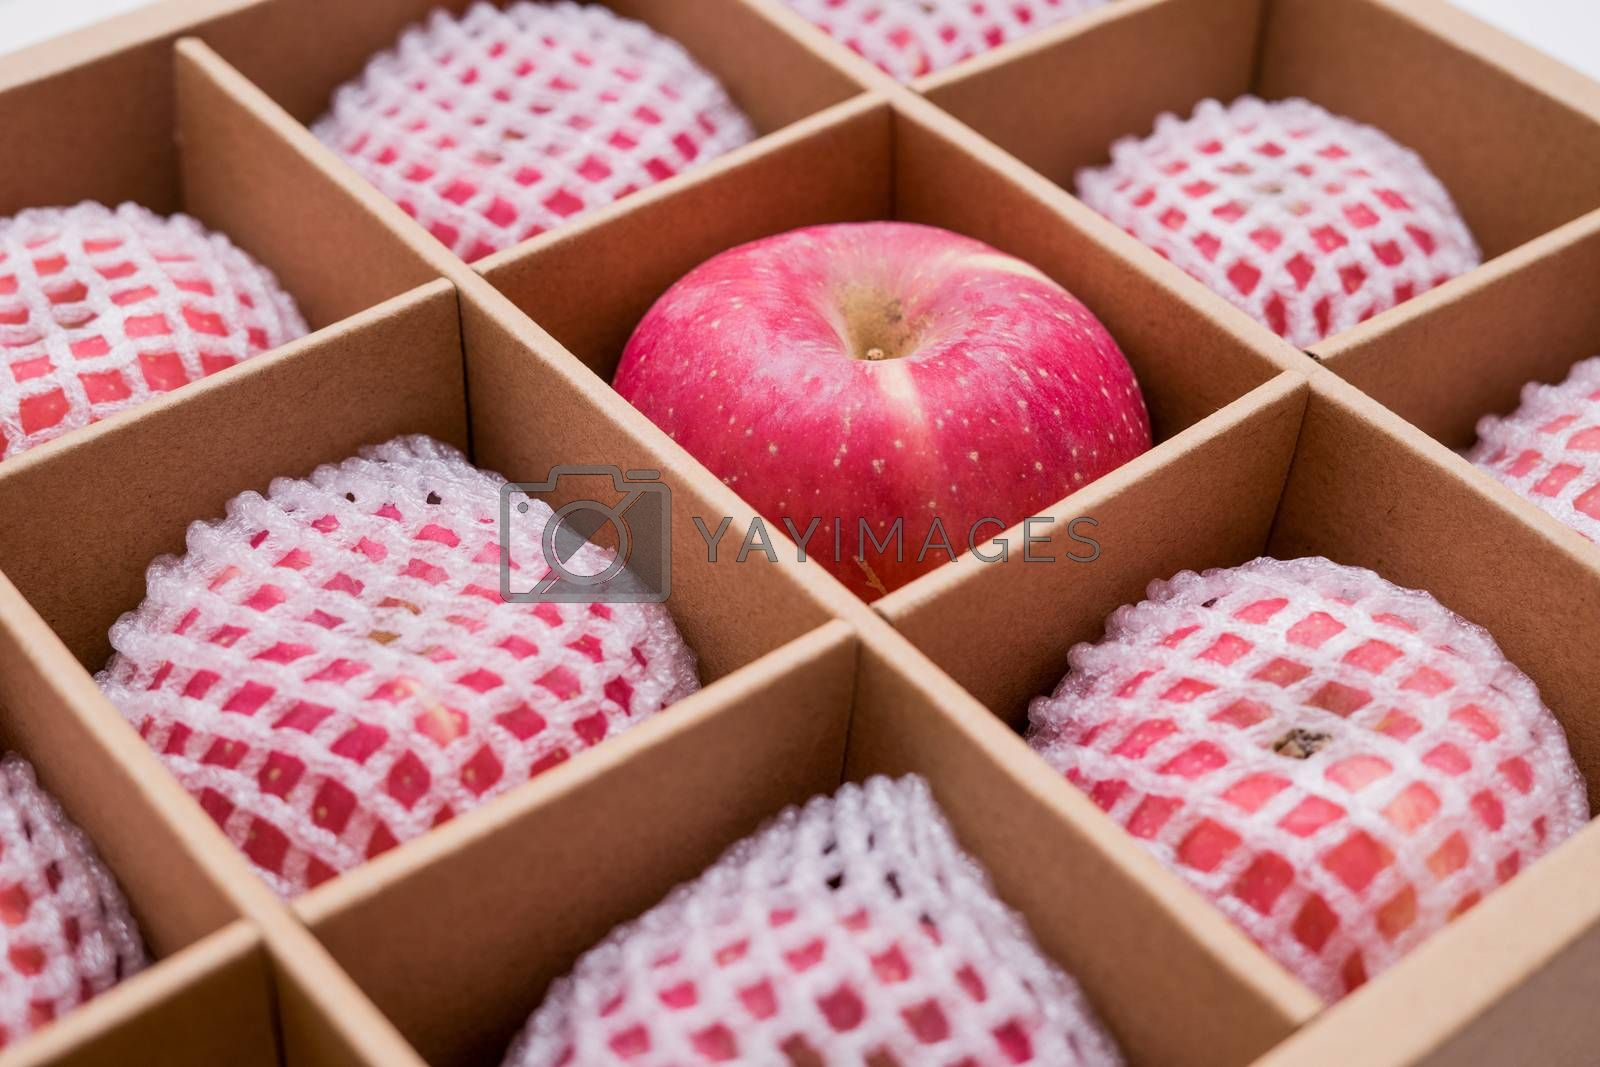 Royalty free image of red apples in paper box by antpkr